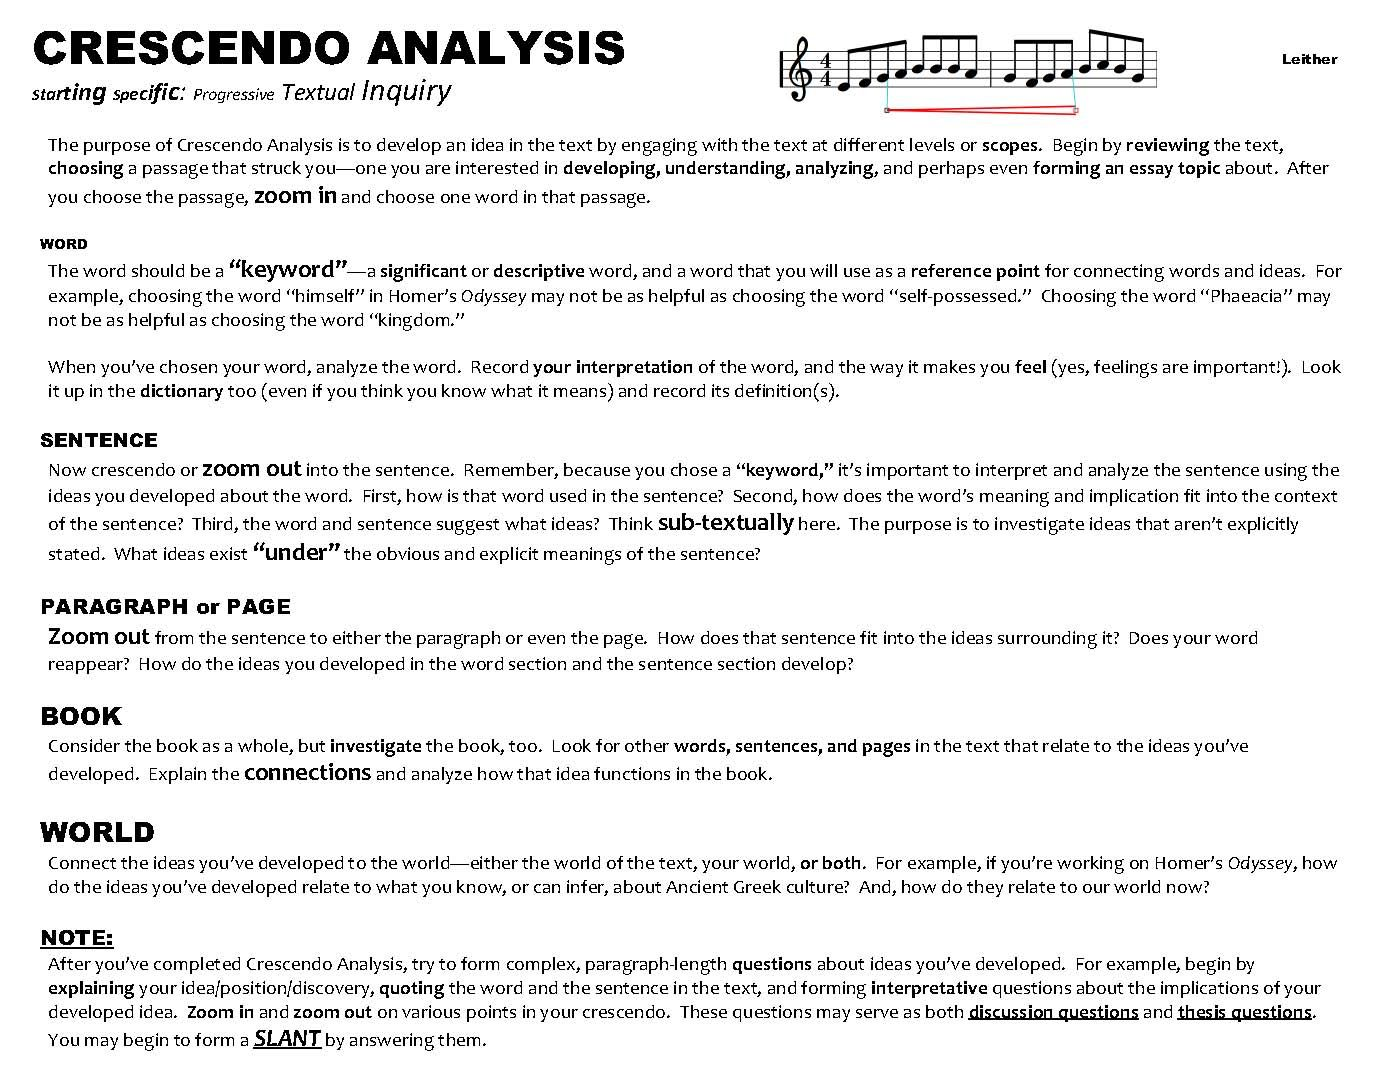 Crescendo Analysi Back From Slant Writing Essay You Want To Read More Information At Www Nicholasleither C College Topic Interpretation Example